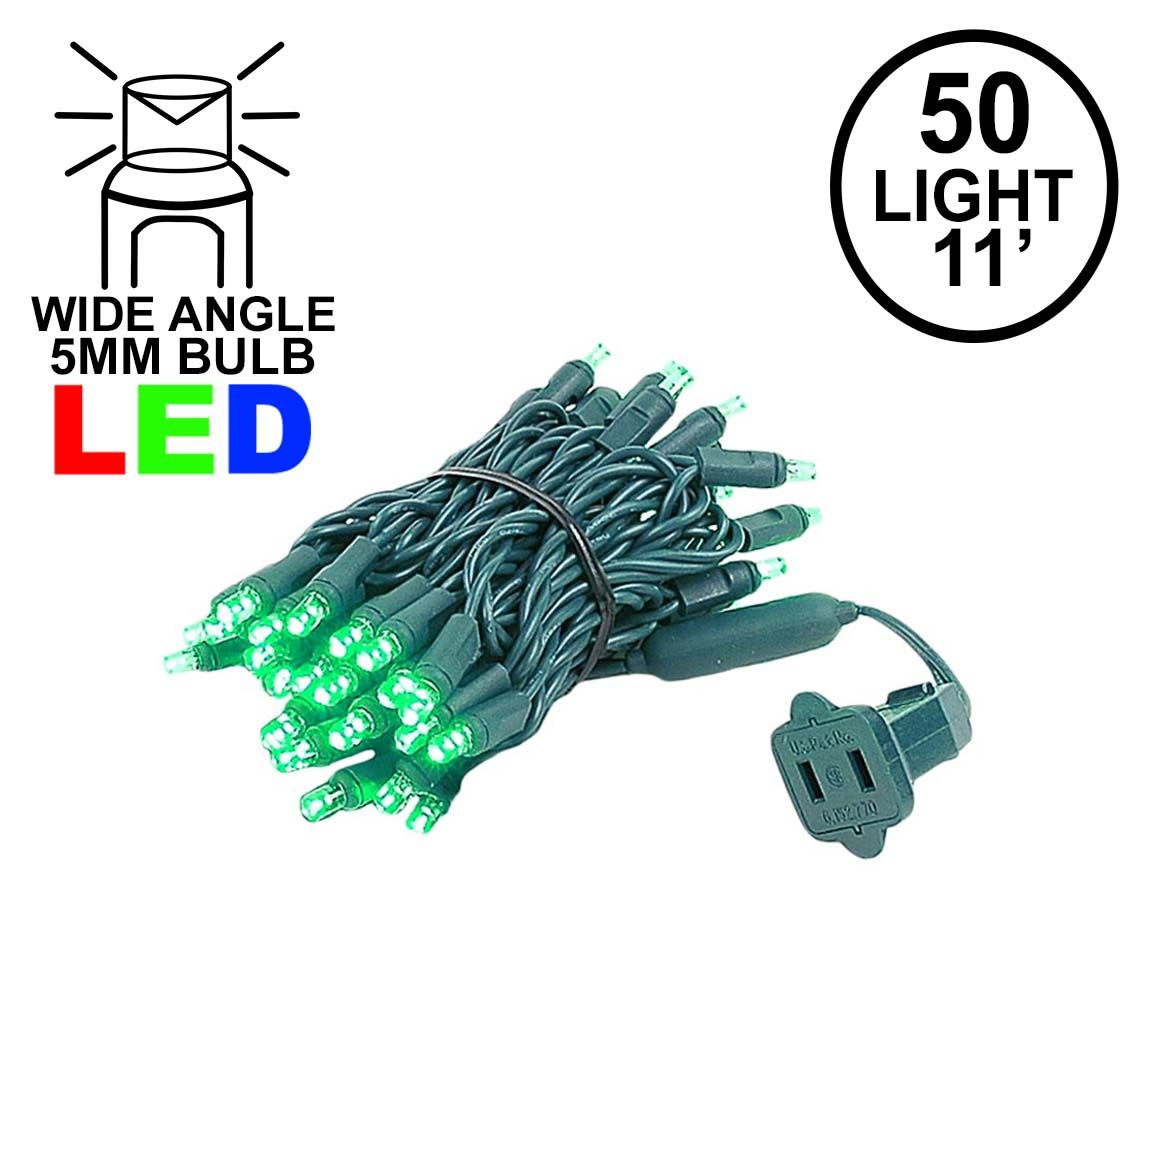 Picture of 50 LED Green LED Christmas Lights 11' Long on Green Wire